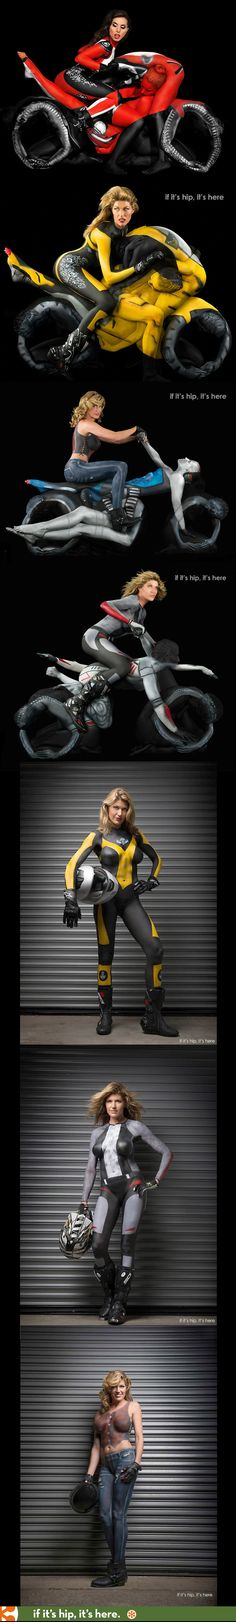 Human Motorcycles made with twisted naked women and body paint. Wow. | http://www.ifitshipitshere.com/human-motorcycles-trina-merry/